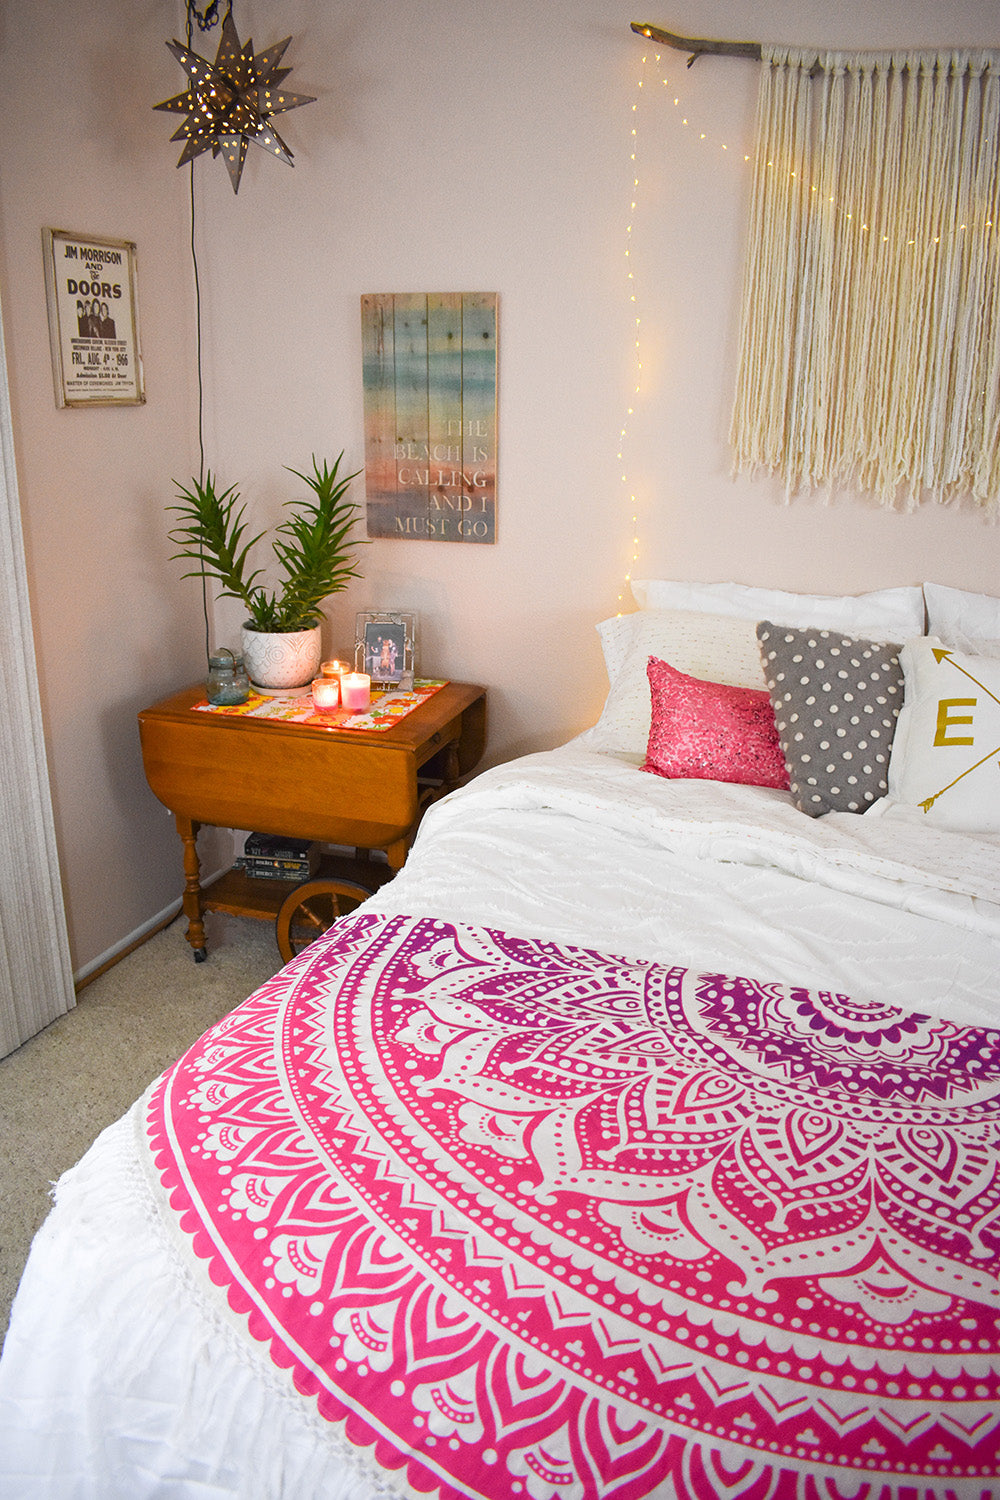 Create A Dreamy Paradise That Reflects Your Style With The Addition Of A  Round Hippie Tapestry